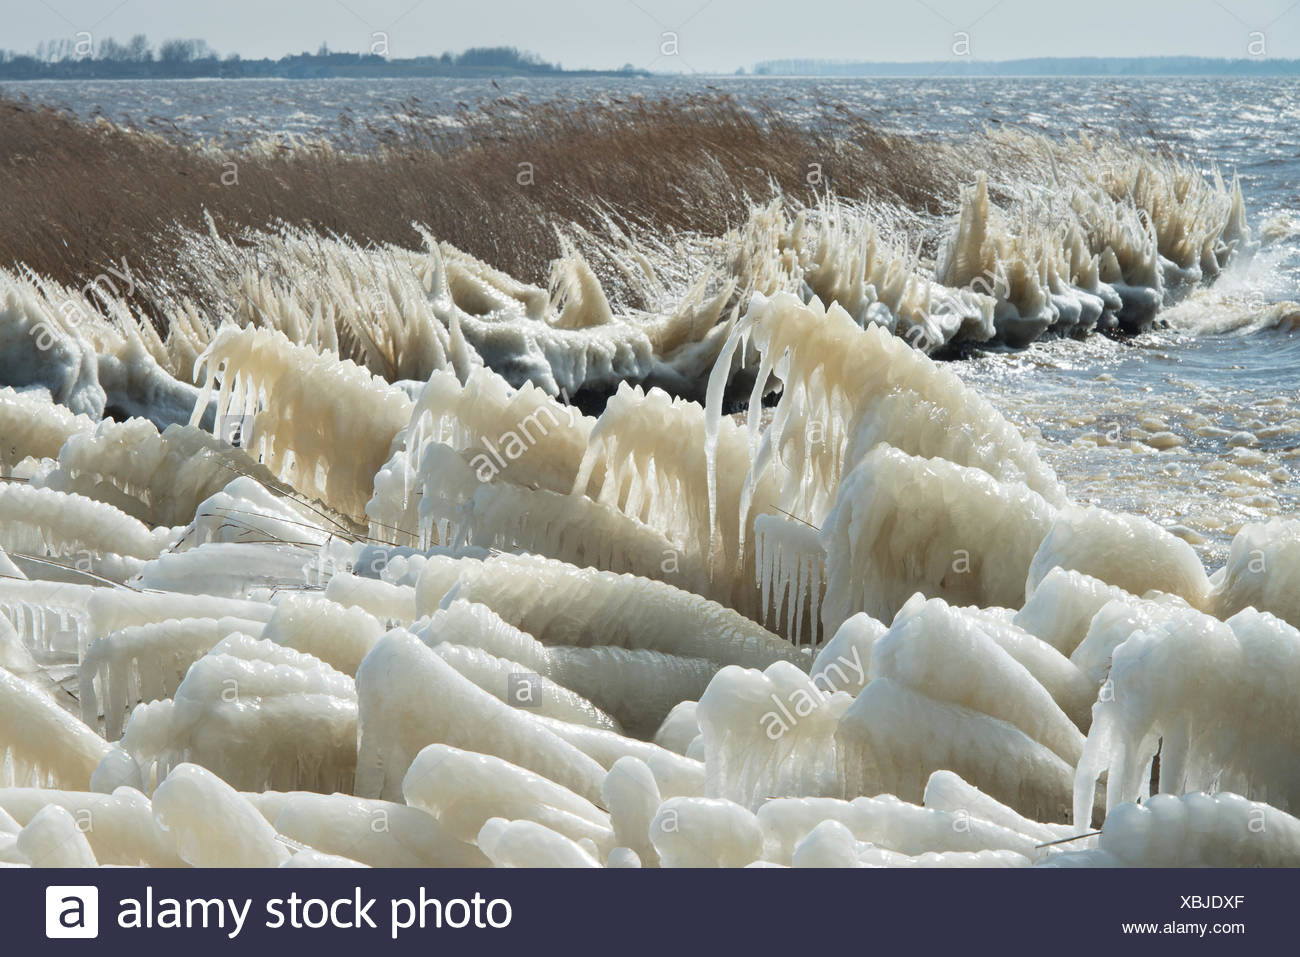 By icecold stormy weather, the reed at the Lauwersmeer changed into strange ice landscapes. - Stock Image